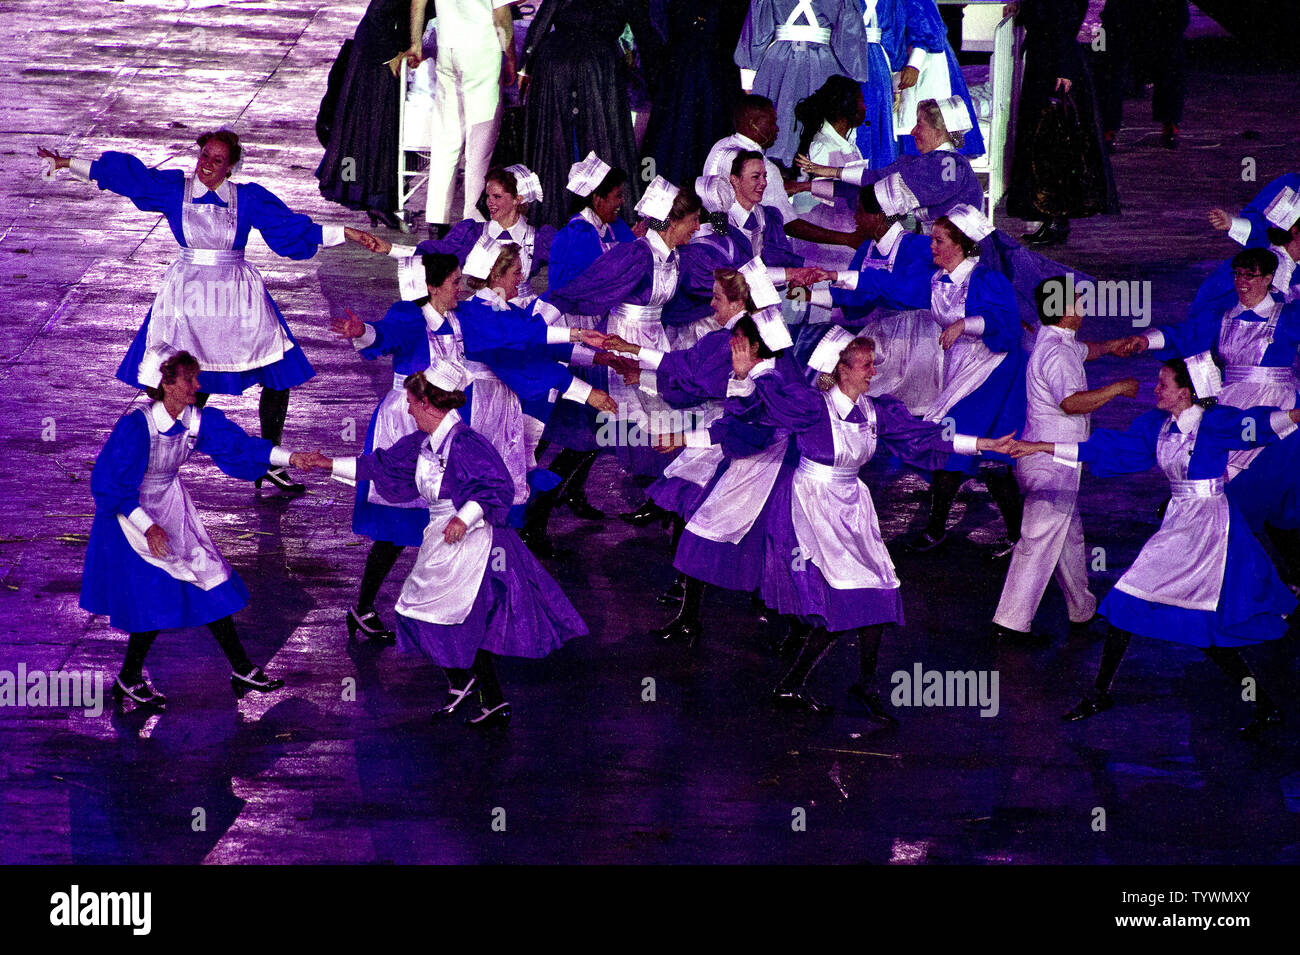 https://c8.alamy.com/comp/TYWMXY/performers-dressed-as-nurses-dance-in-celebration-of-the-british-national-health-service-nhs-during-the-opening-ceremony-at-the-london-2012-summer-olympic-games-on-july-27-2012-in-london-upiron-sachs-TYWMXY.jpg